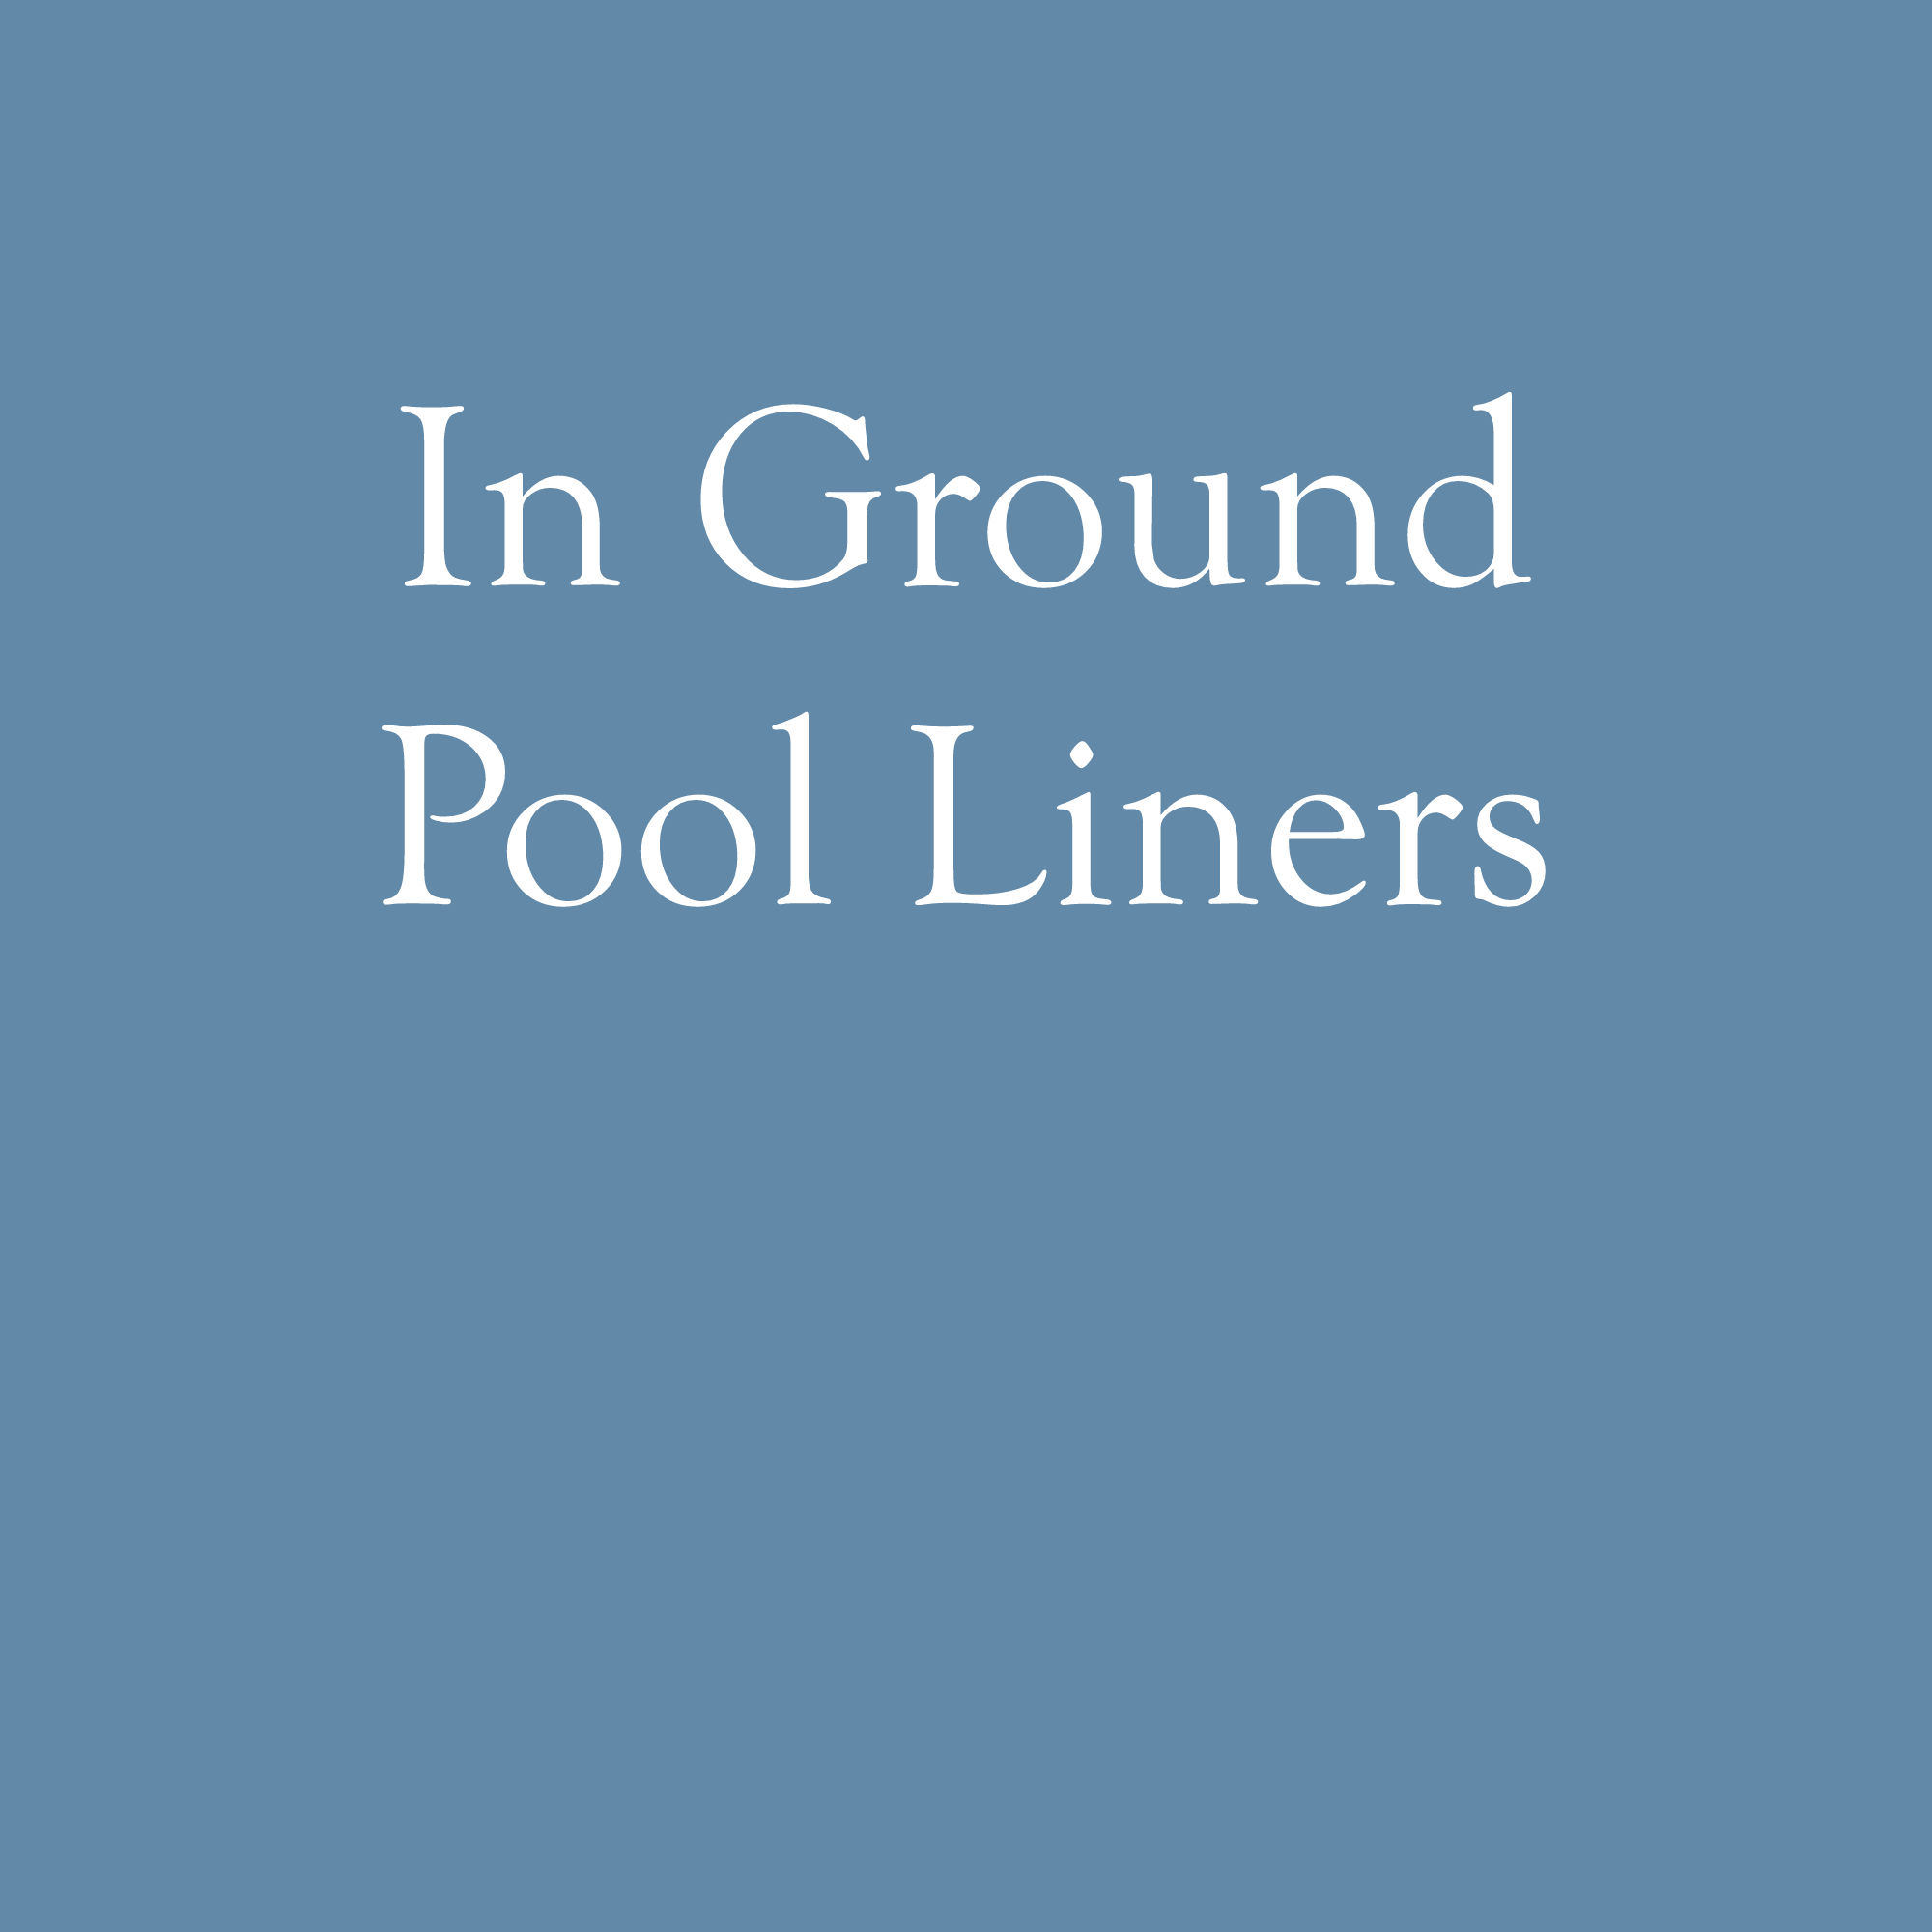 In Ground Pool Liners